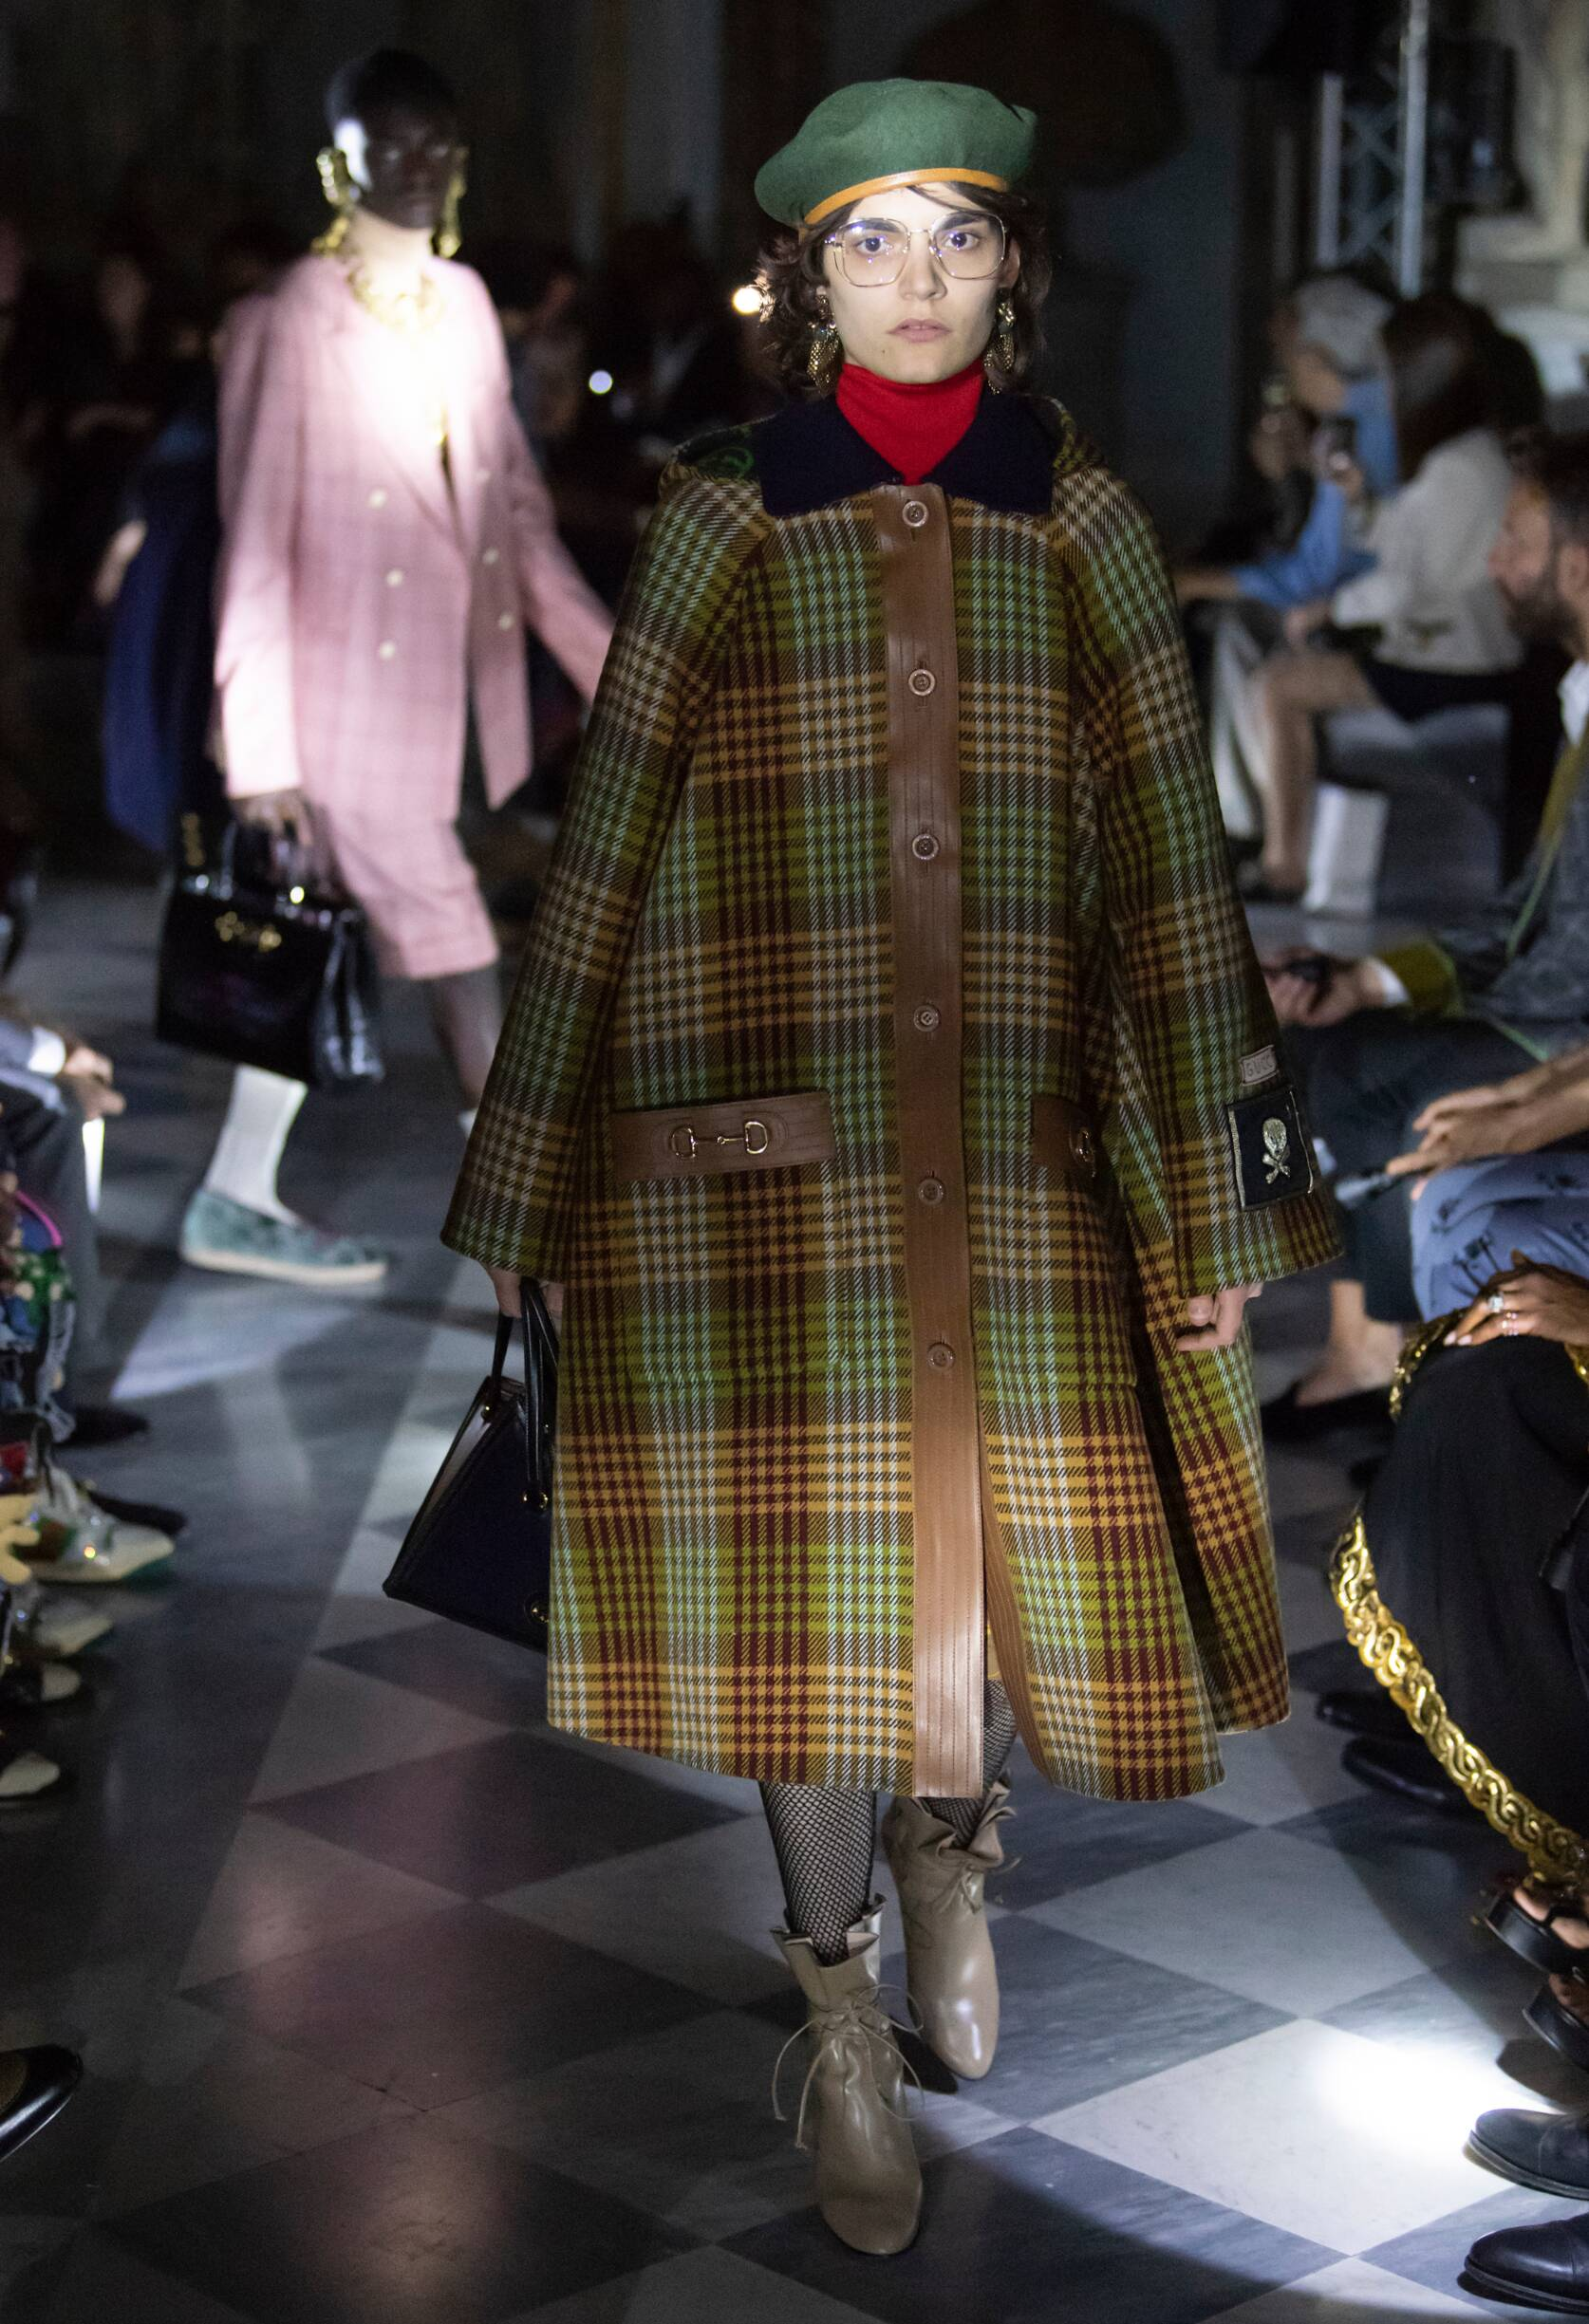 Gucci Cruise 2020 Collection Look 14 Rome